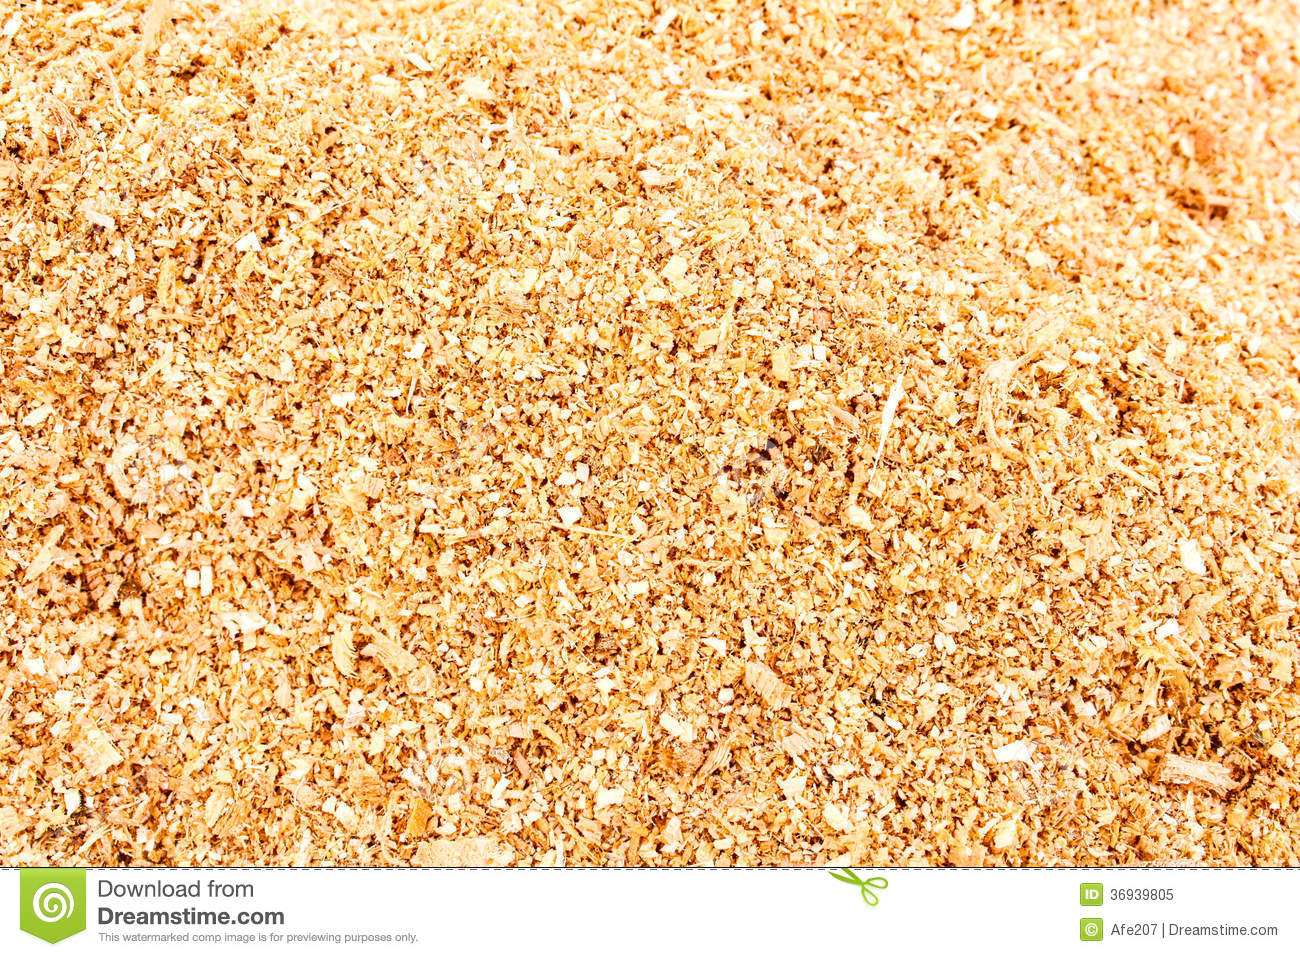 How Different Are Wood Shavings And Sawdust ~ Shavings in workshop wood sawdust texture background